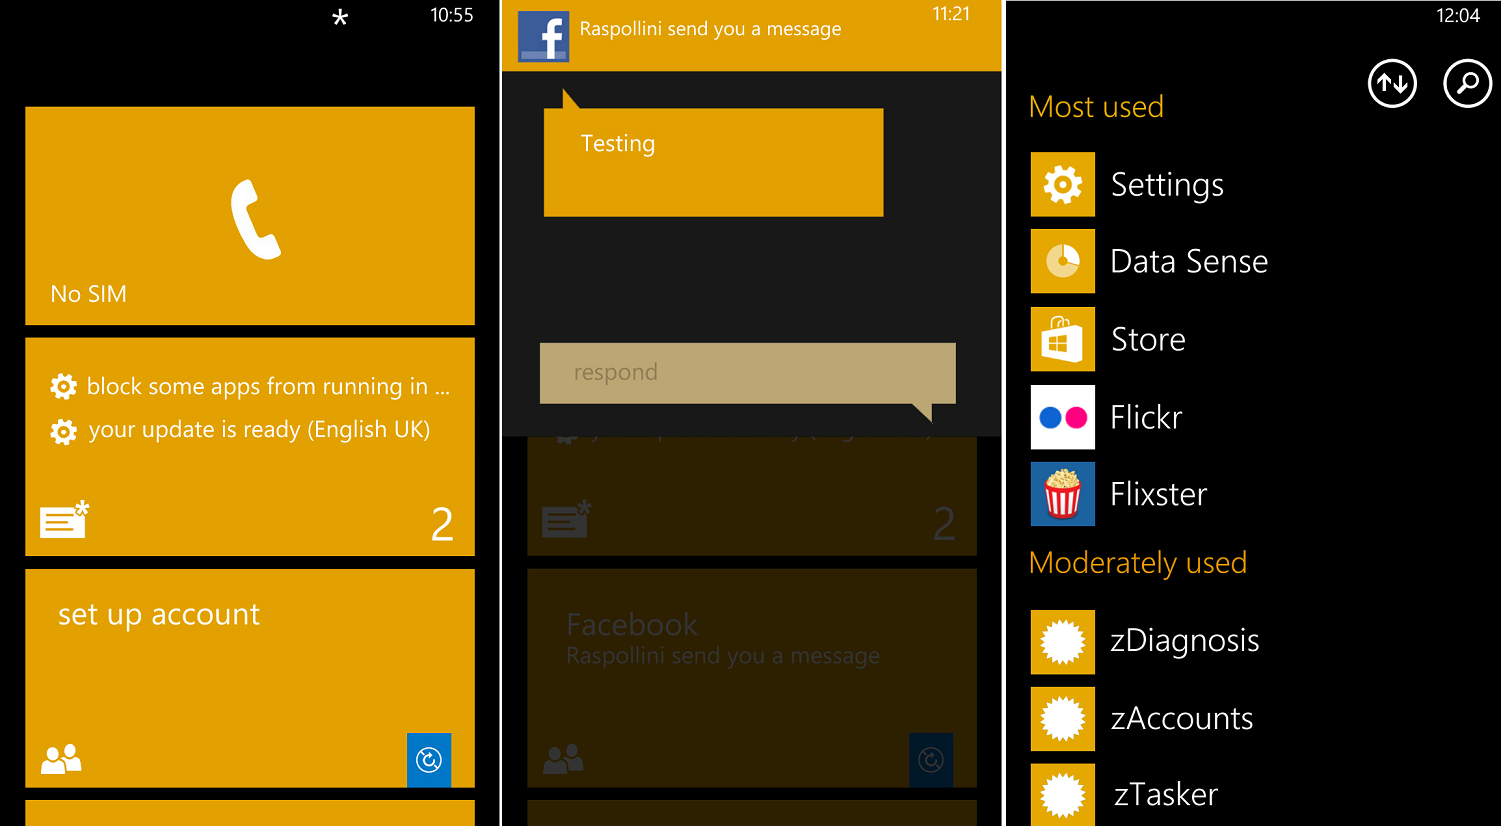 WP81_Screensotif